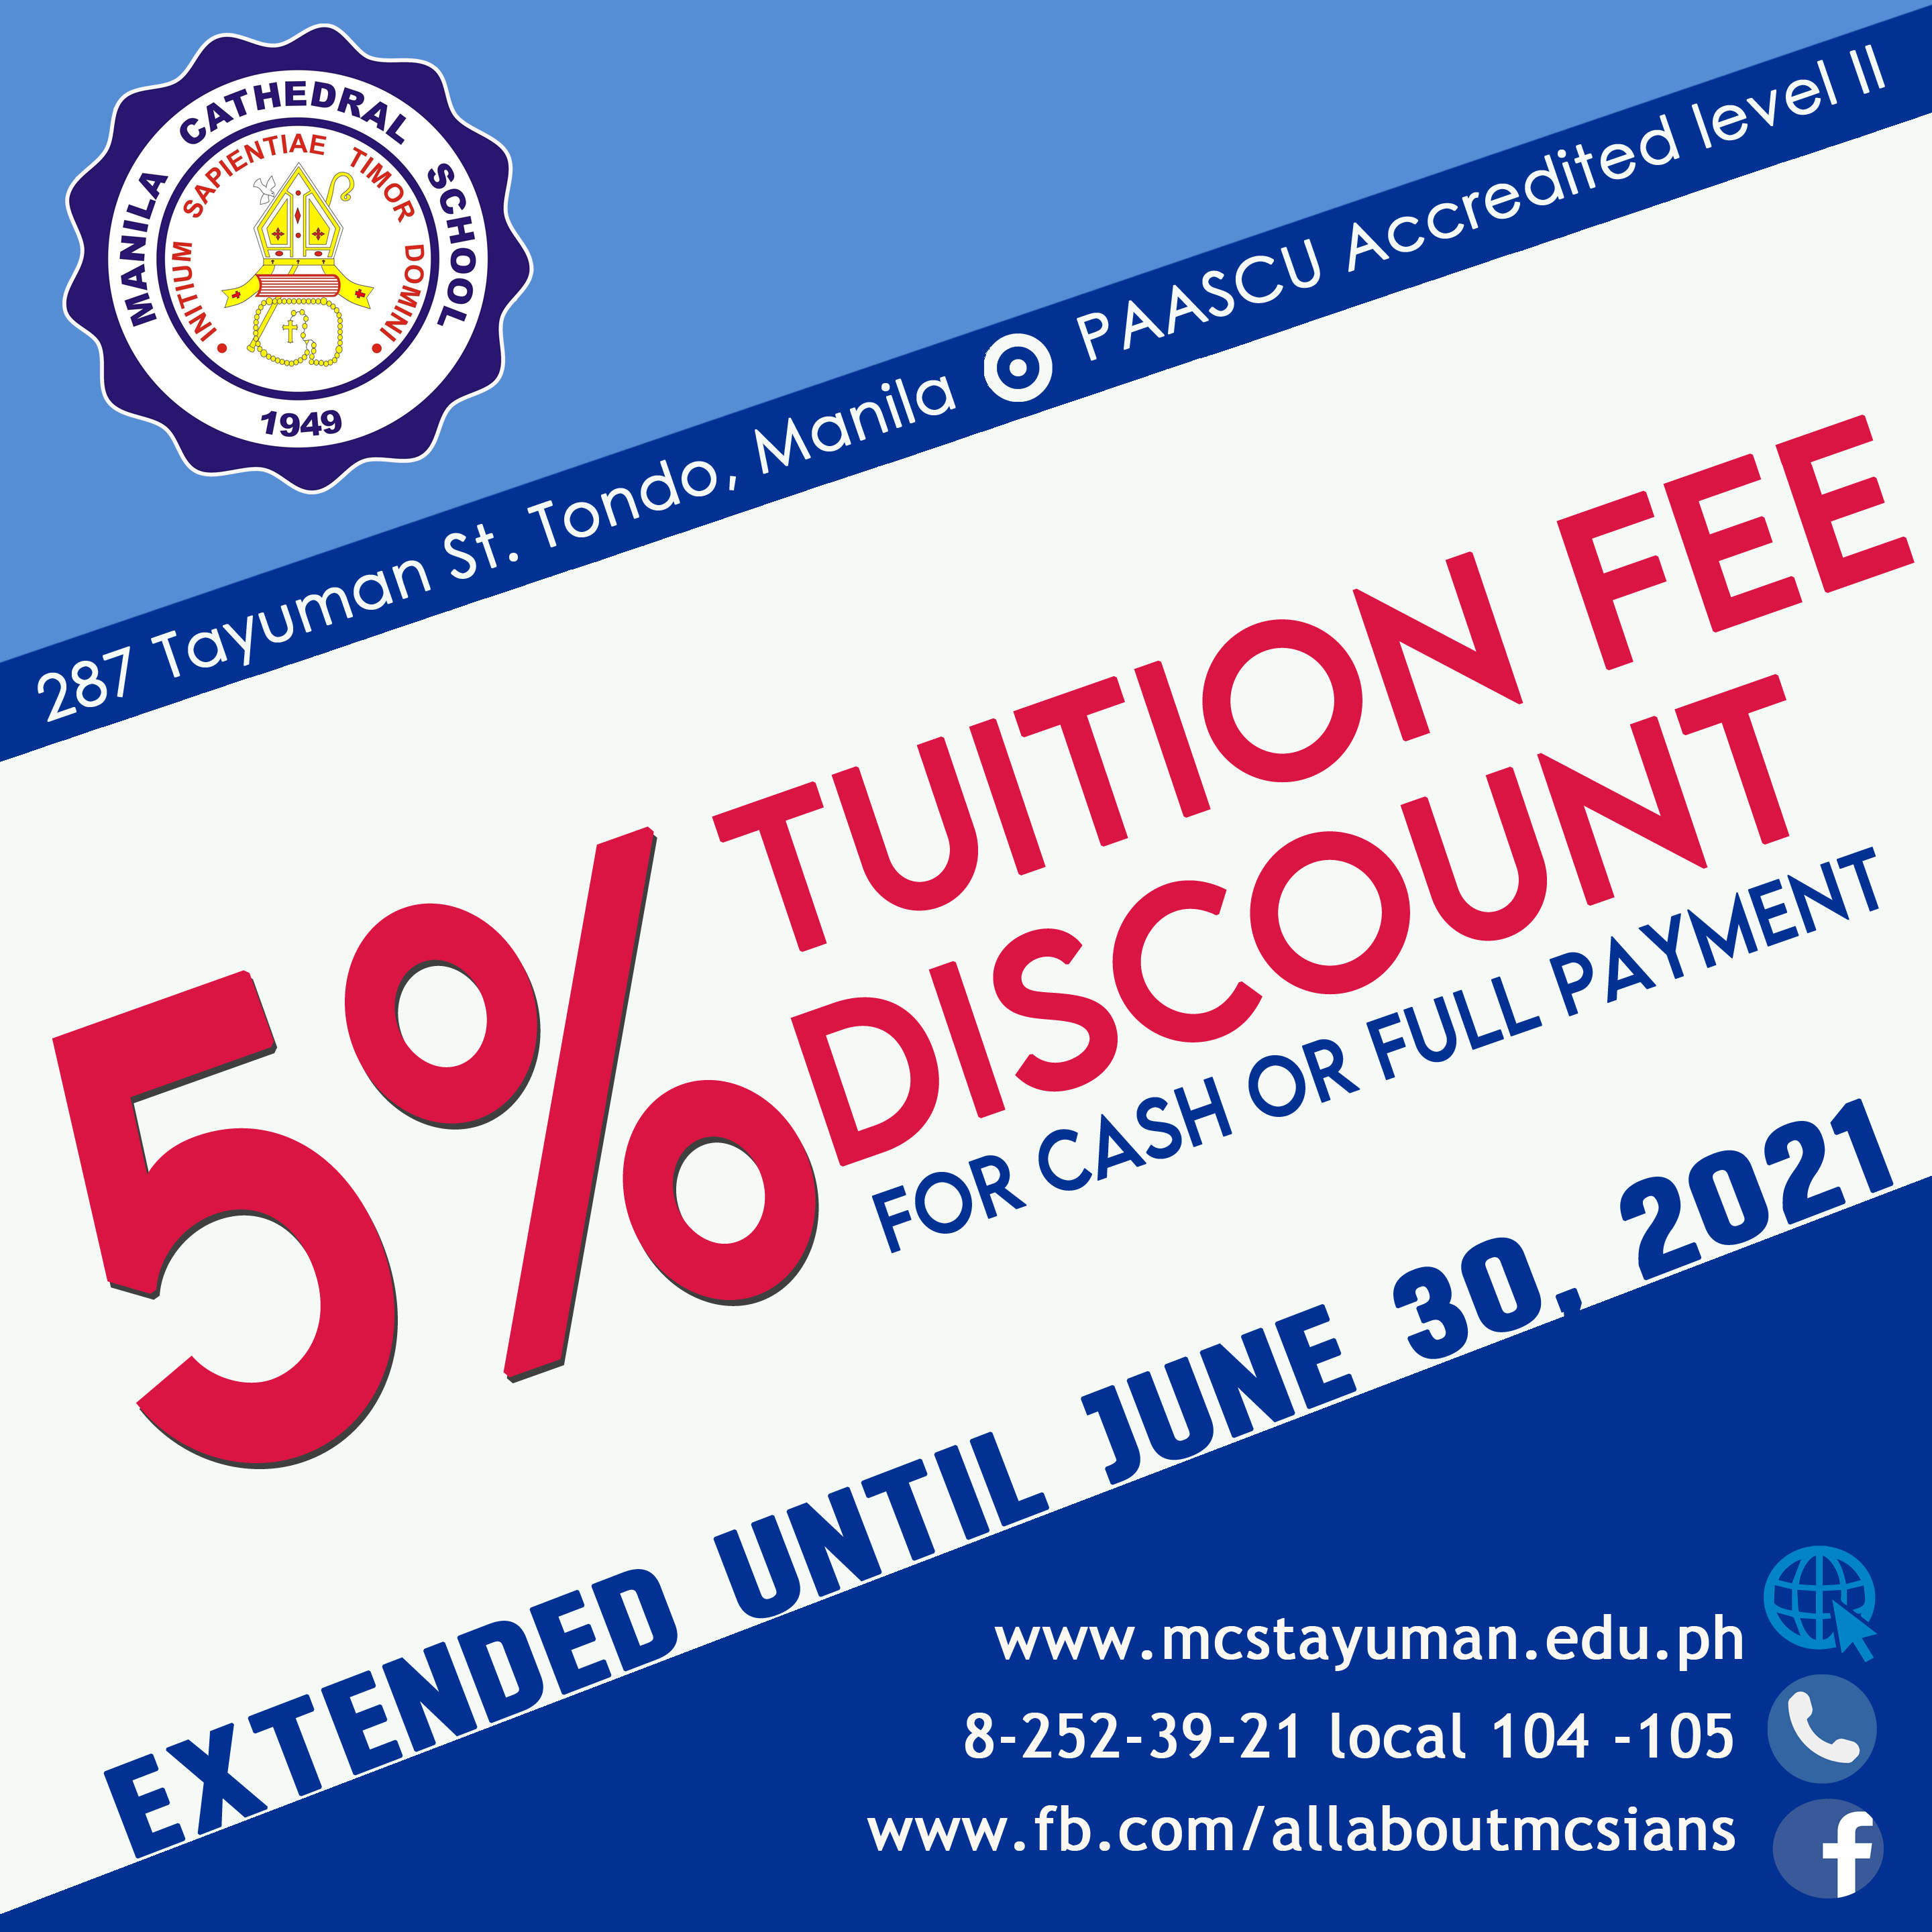 Our early enrollment discount on tuition fees is extended until June 30, 2021.